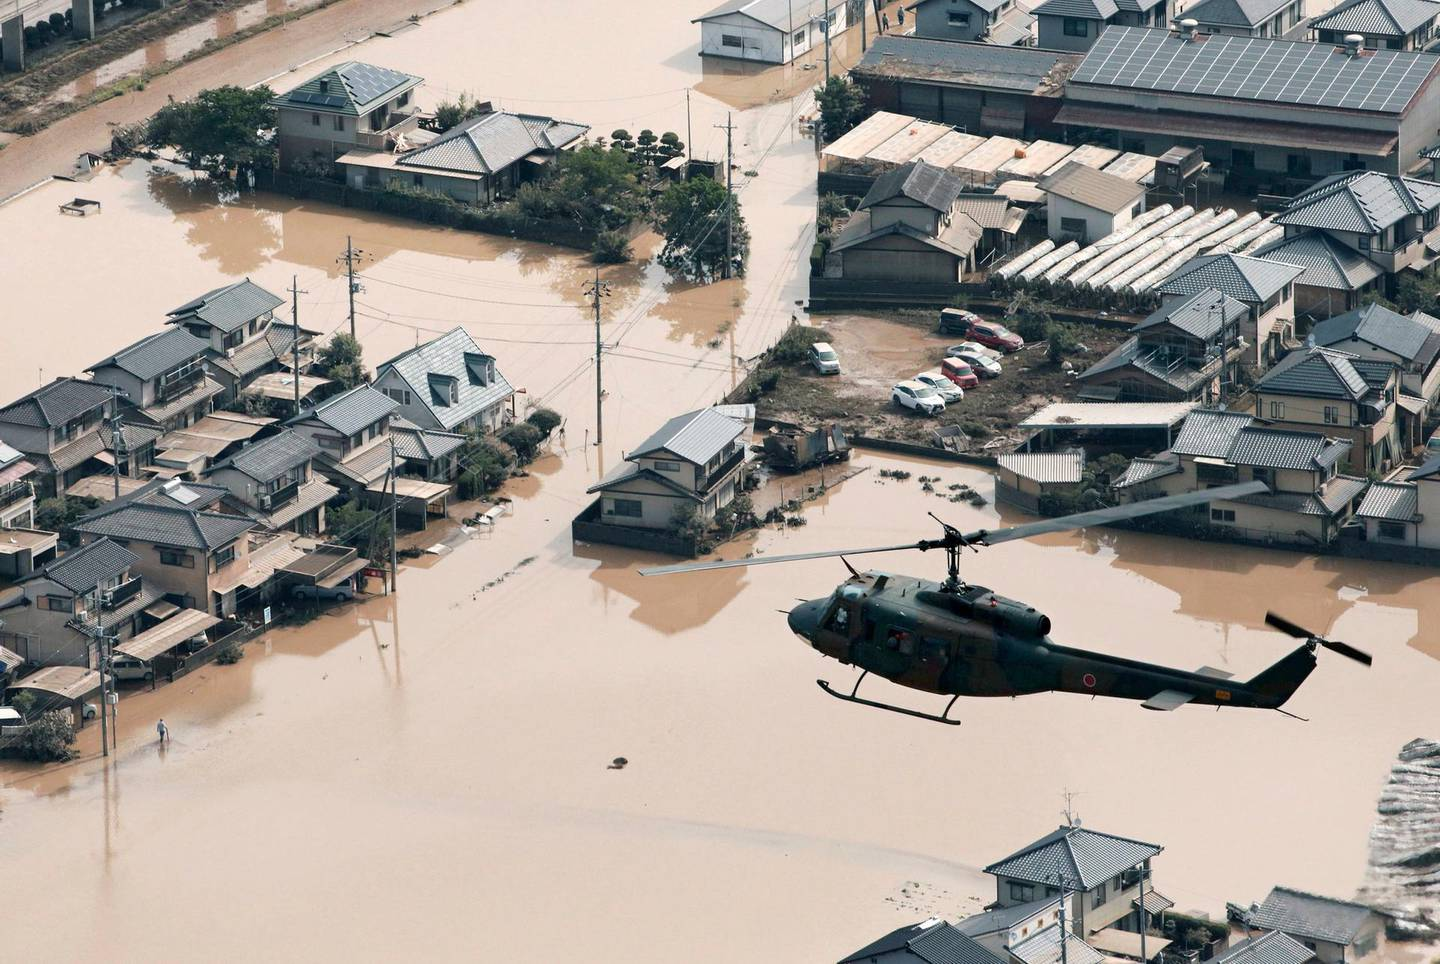 A helicopter flies over a flooded housing area in Kurashiki, Okayama prefecture, western Japan Monday, July 9, 2018. People prepared for risky search and cleanup efforts in southwestern Japan on Monday, where several days of heavy rainfall had set off flooding and landslides in a widespread area (Kyodo News via AP)